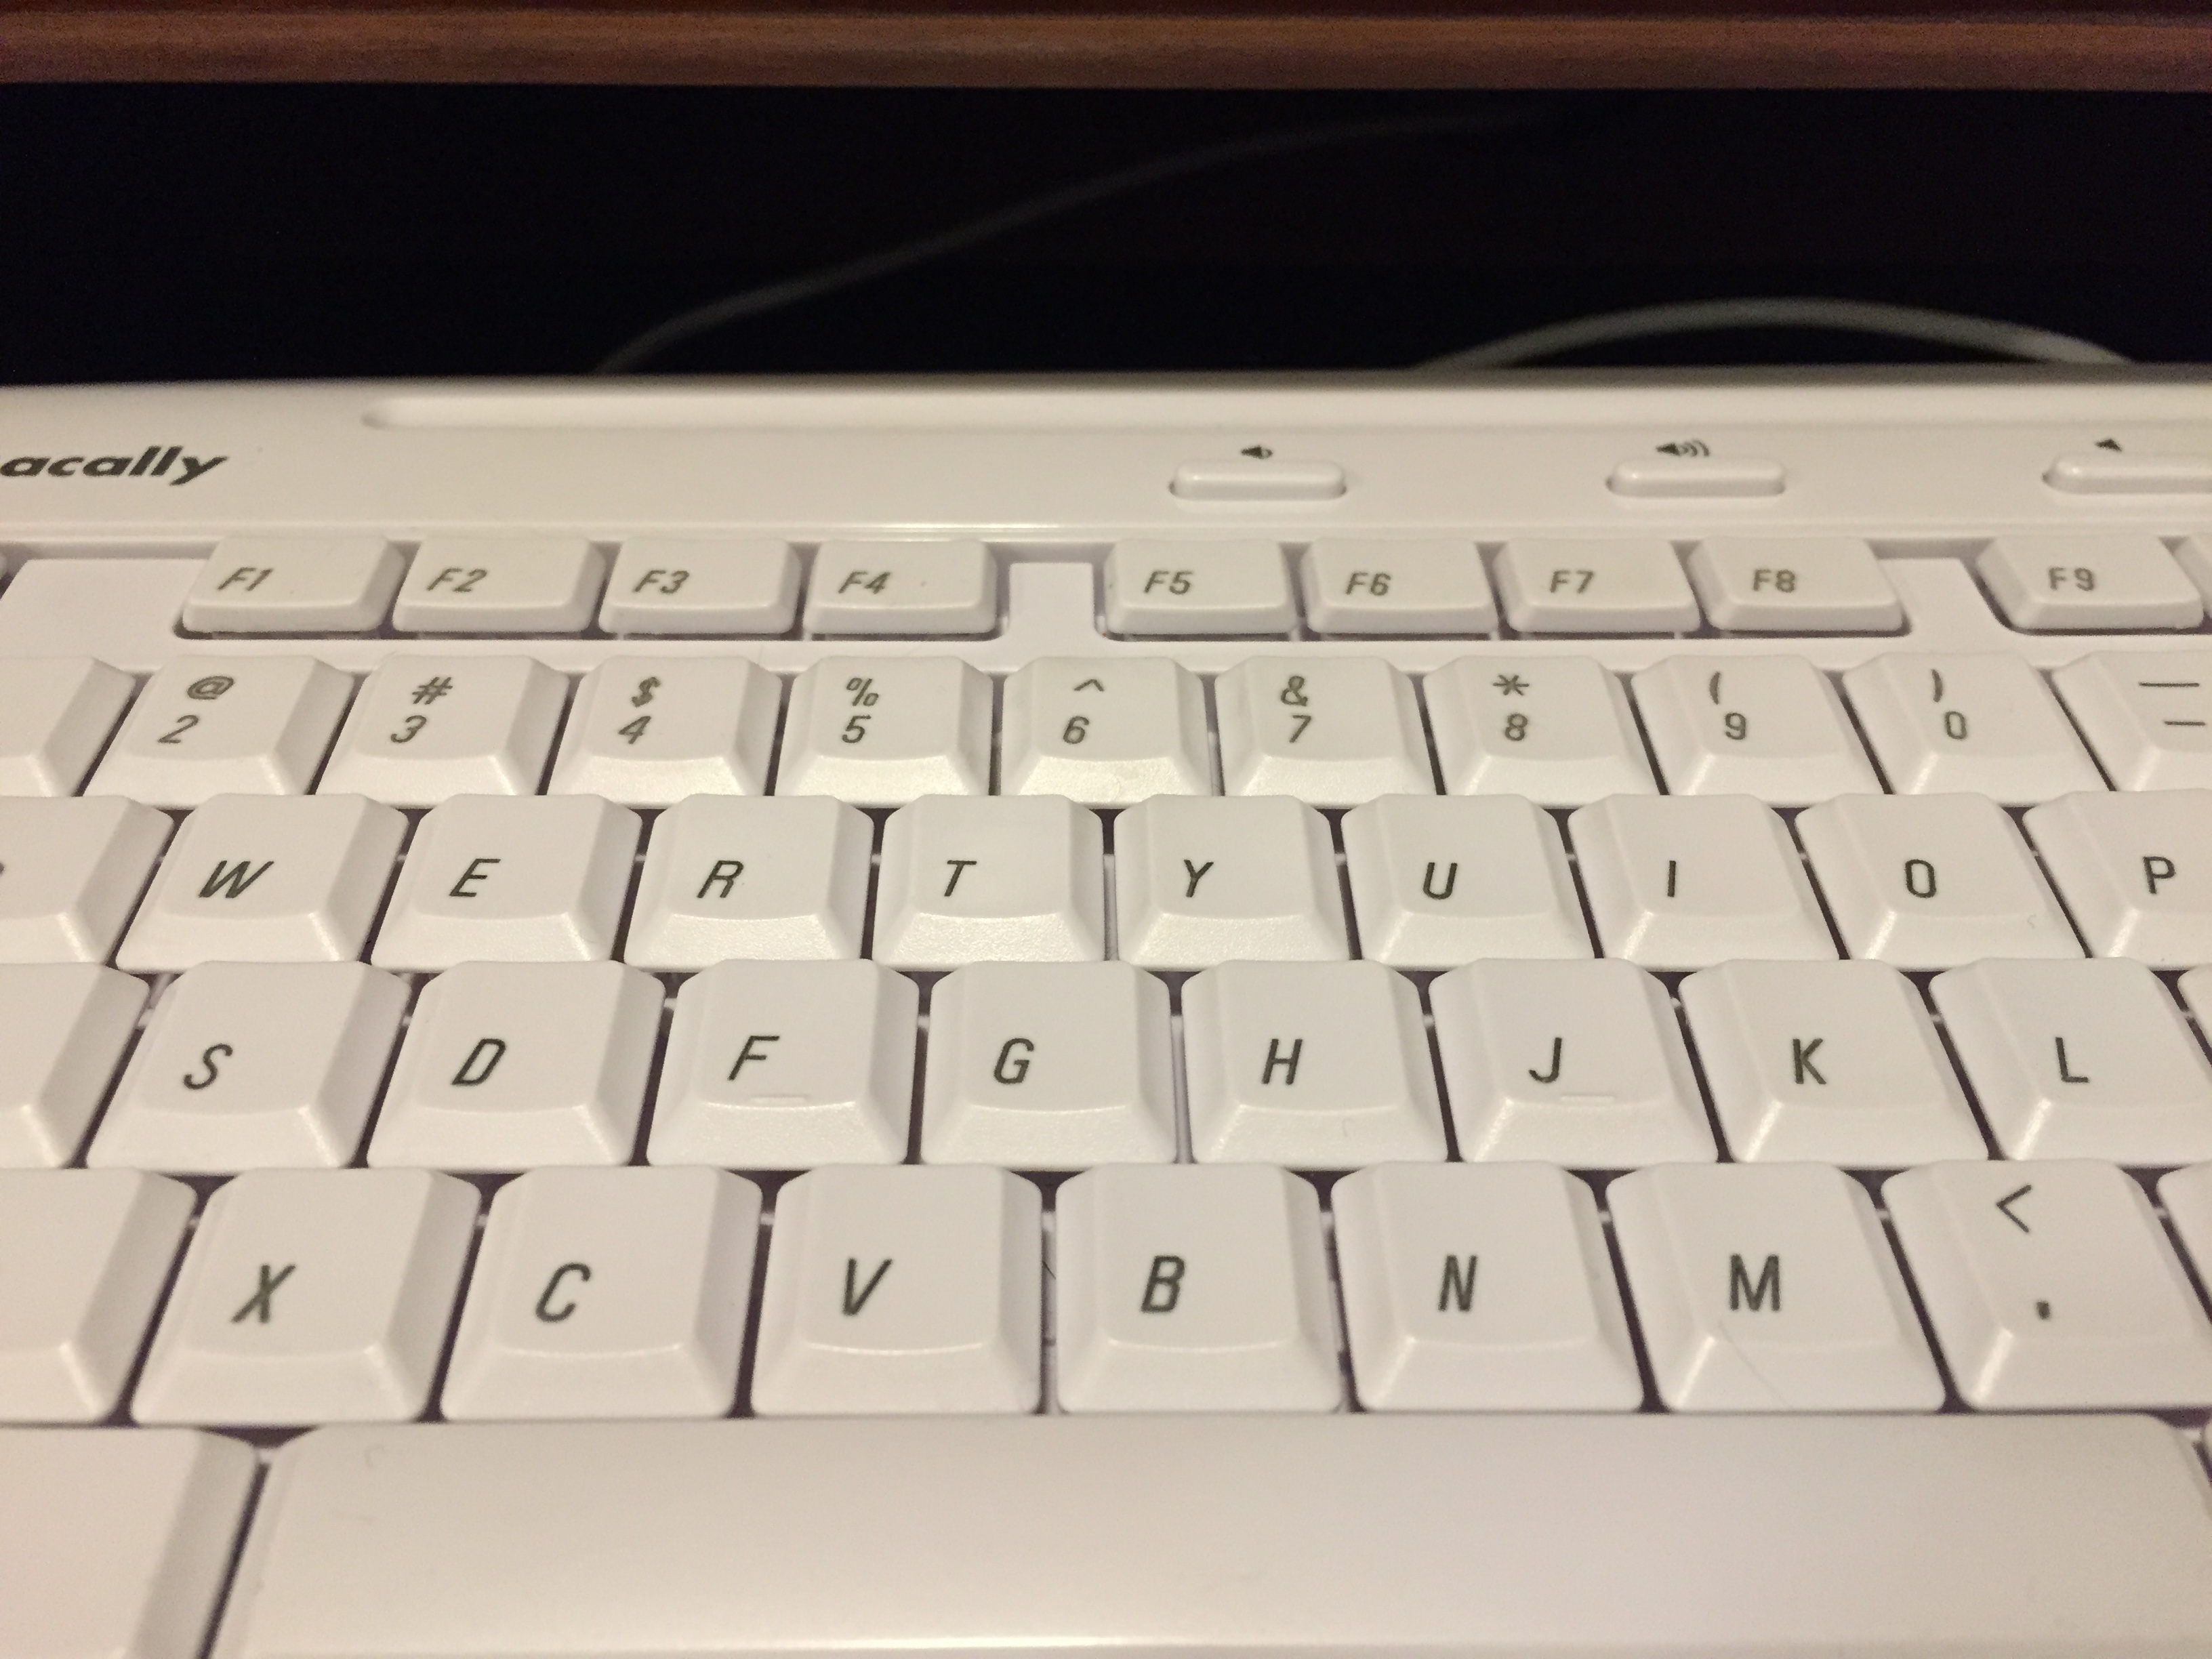 Macally Mac Keyboard